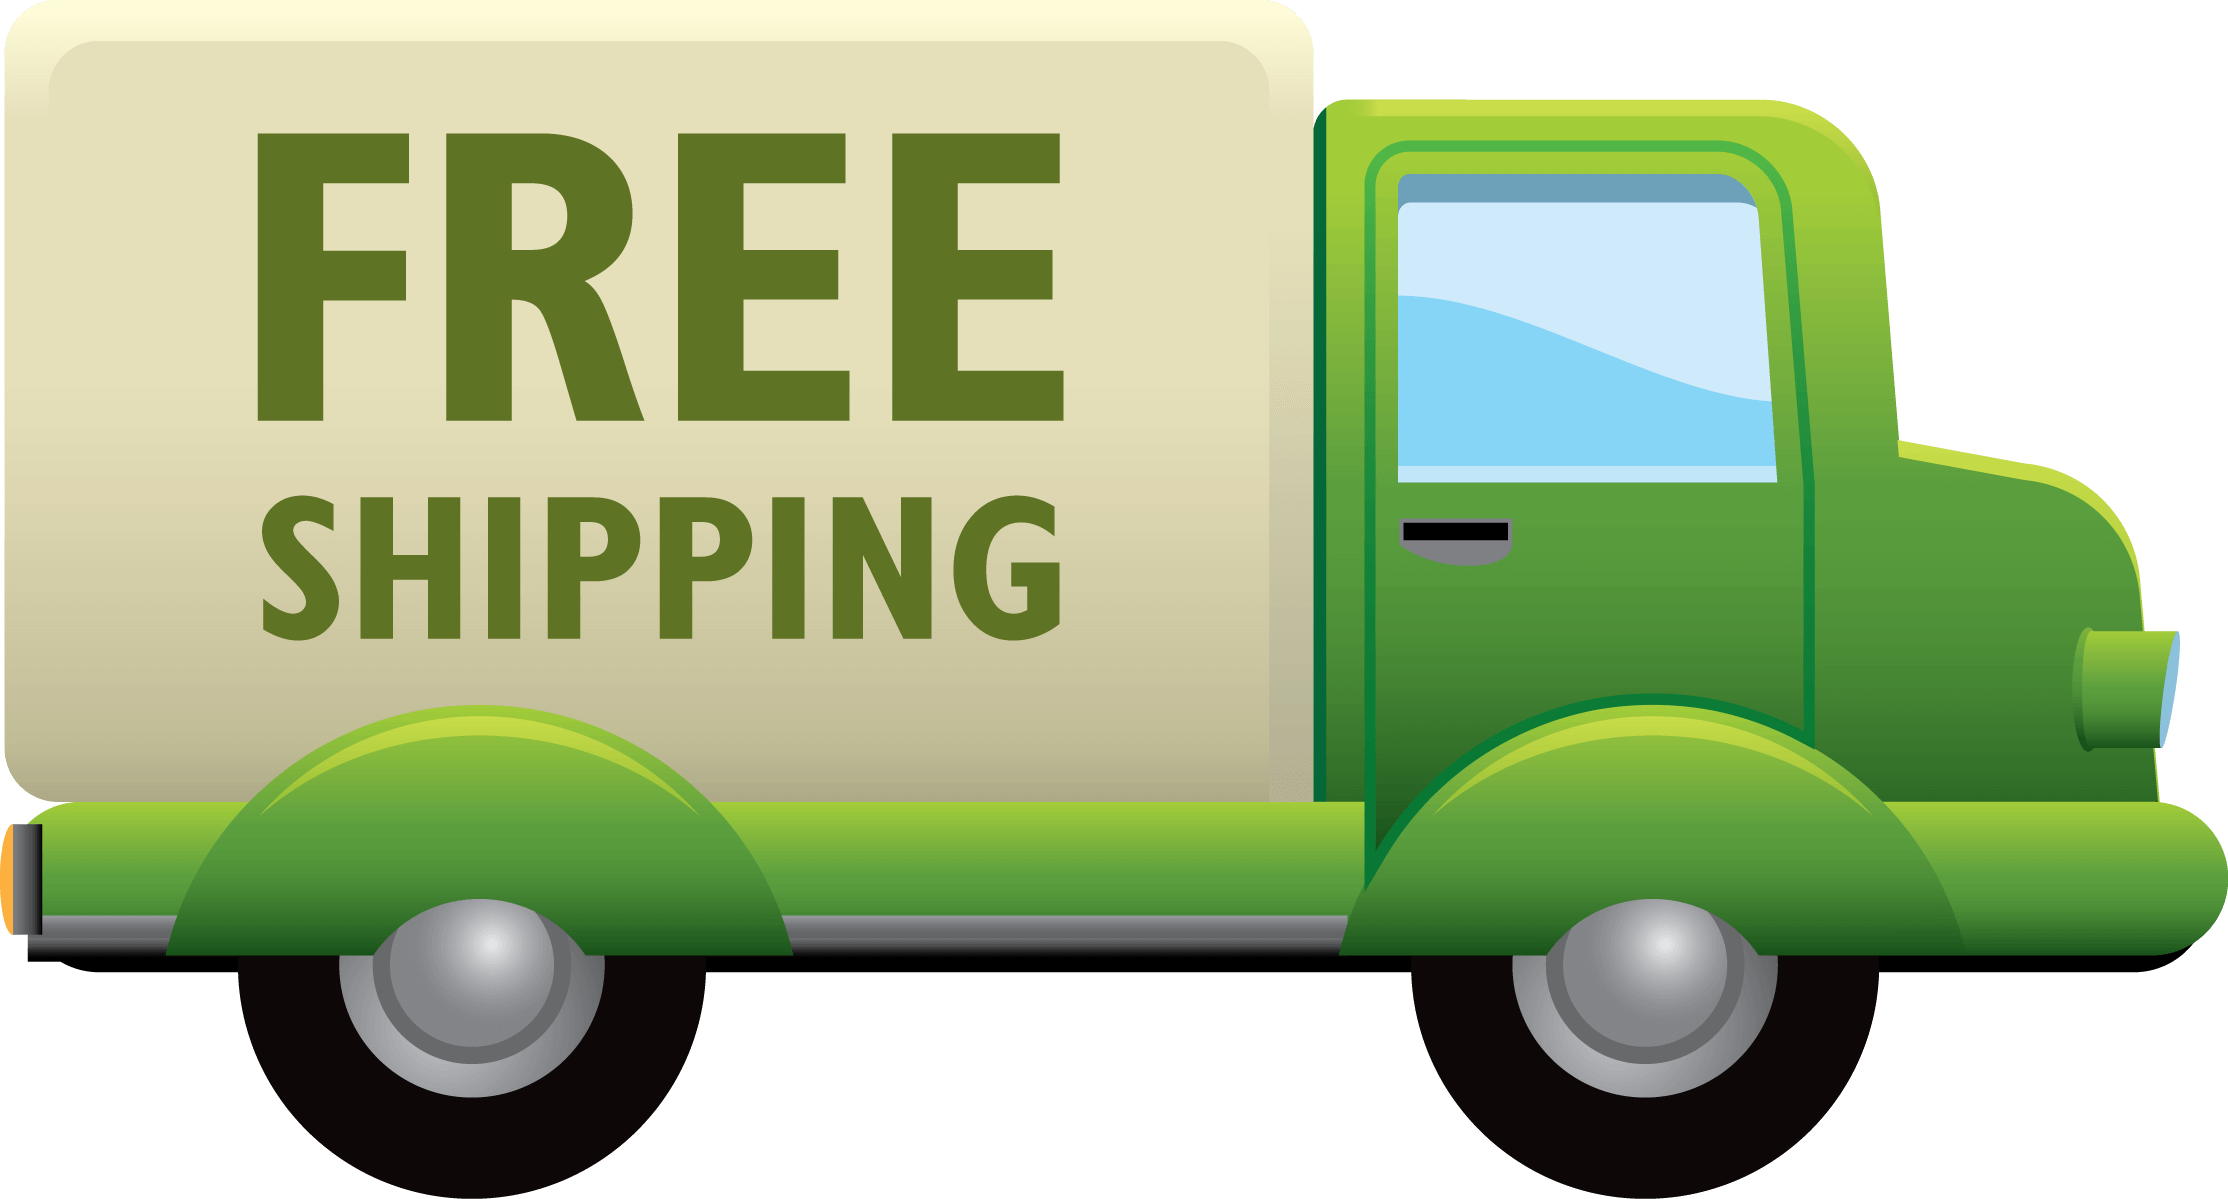 03-01free-shipping.png